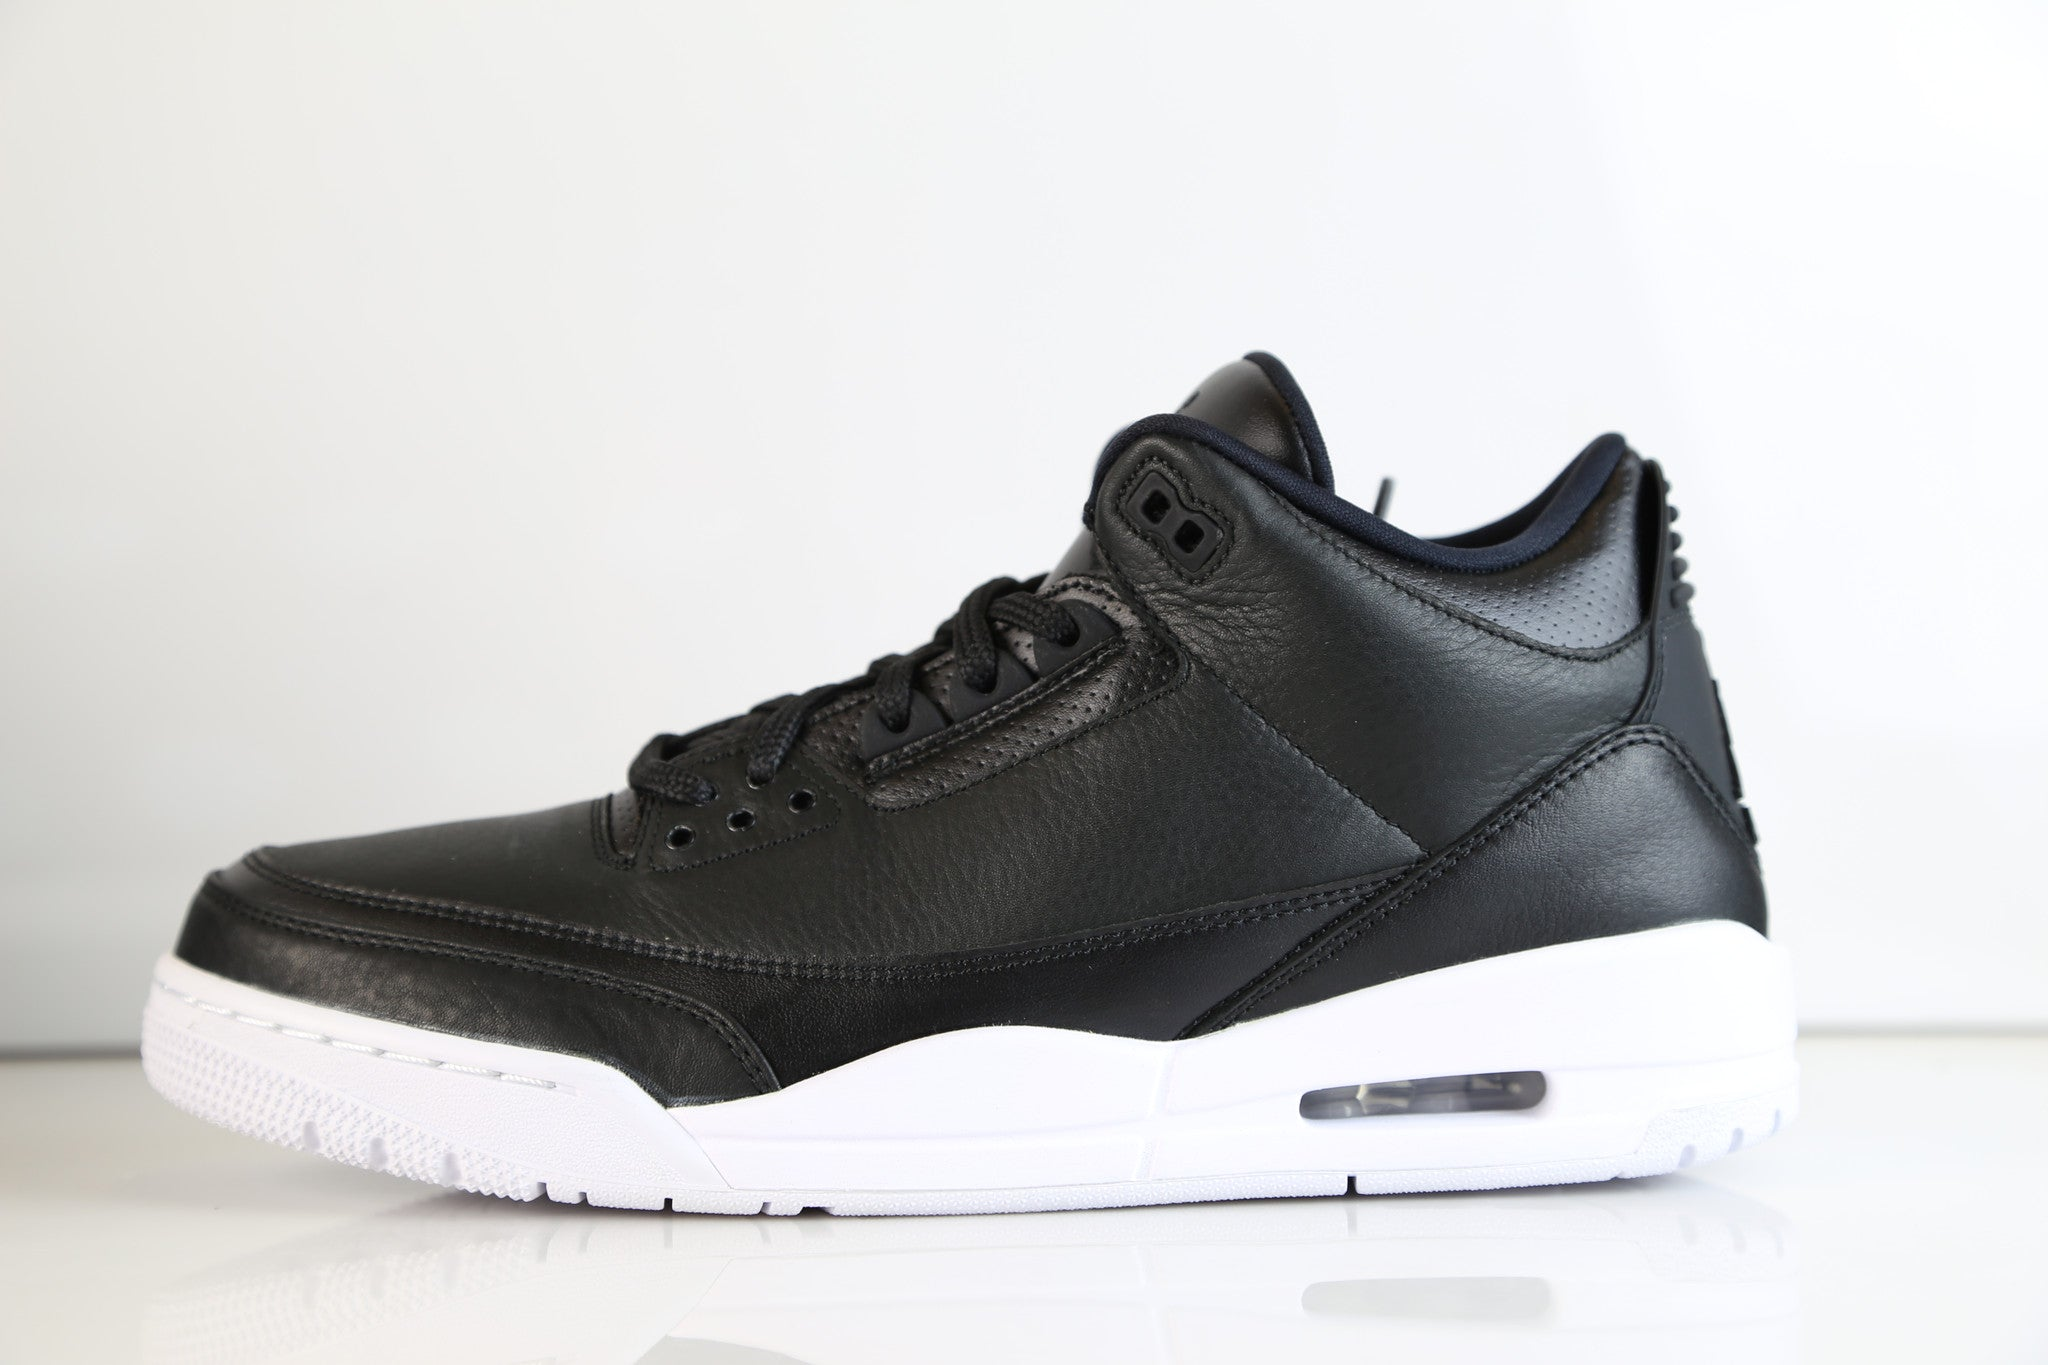 wholesale dealer 29355 42c69 Nike Air Jordan Retro 3 Cyber Monday Black 2016 136064-020 ...